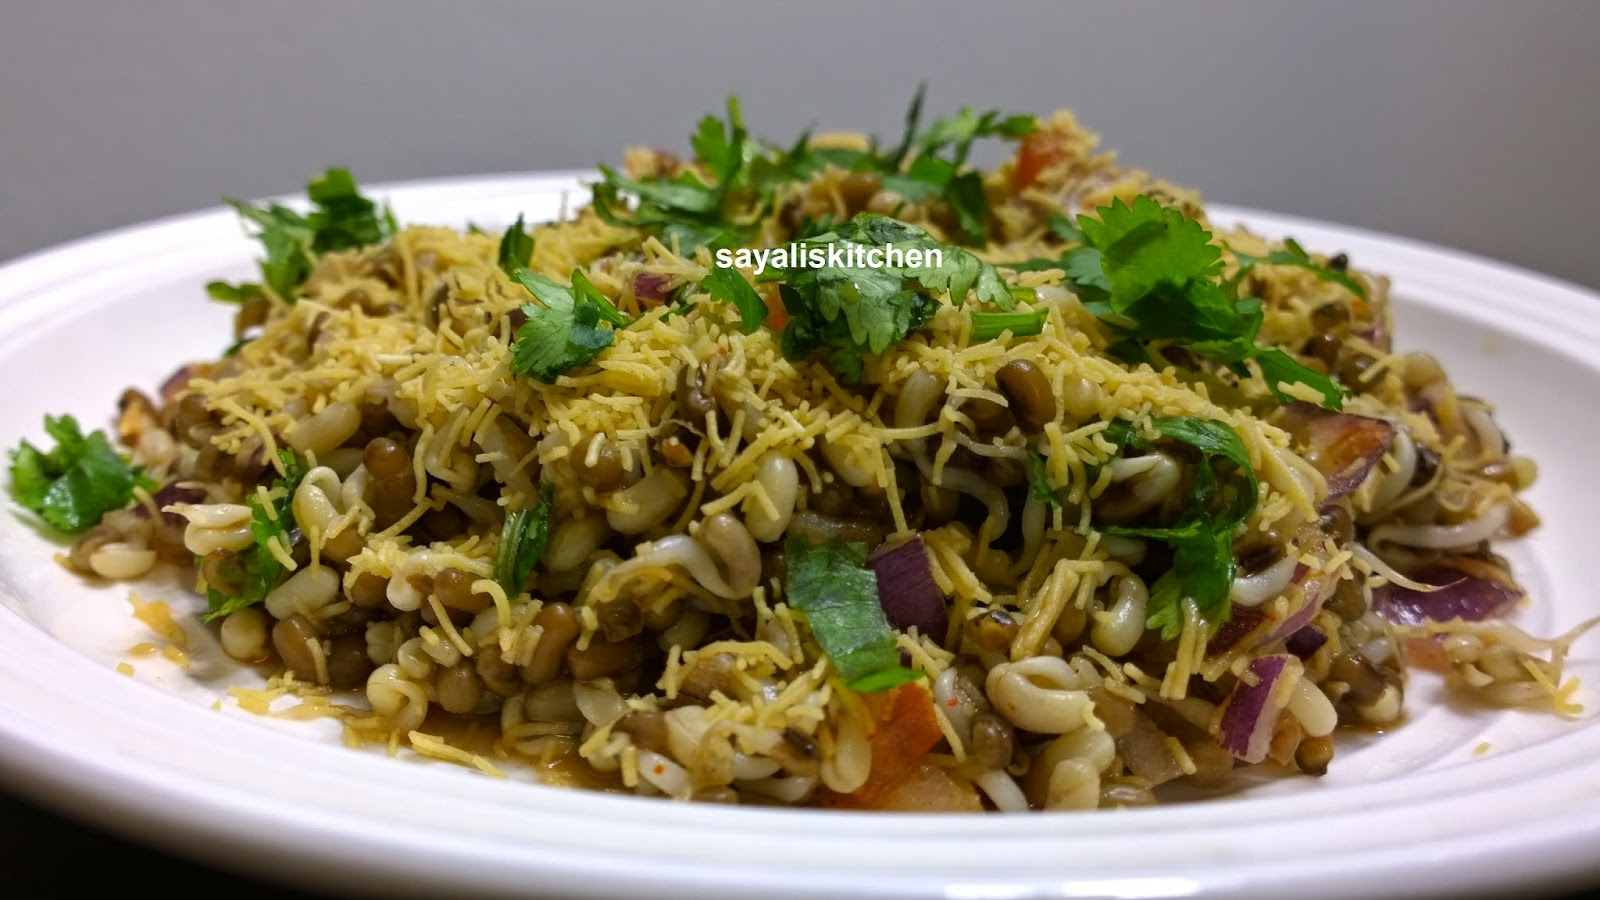 Mataki Bhel - Sprouts Bhel - Healthy Chat Item - Sprouts Recipe